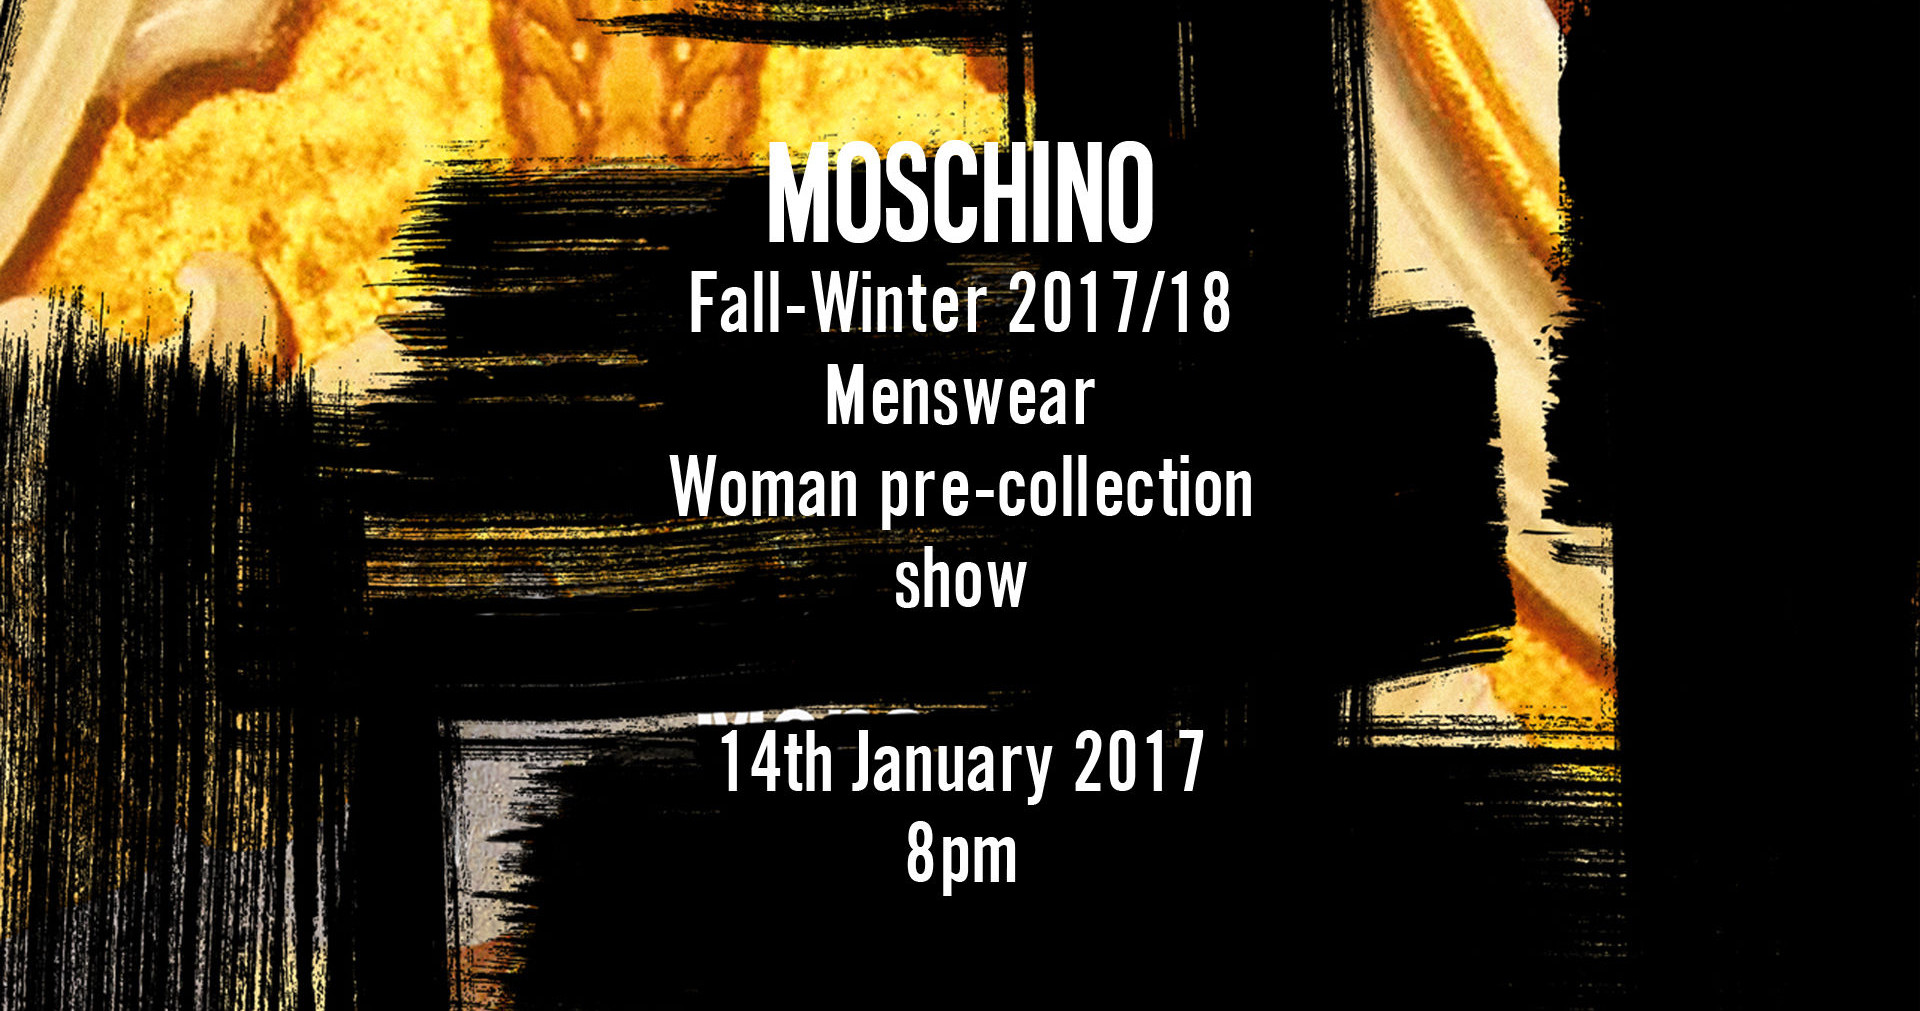 Moschino Fall Winter 2017-18 Men's Fashion Show Live Streaming Milan